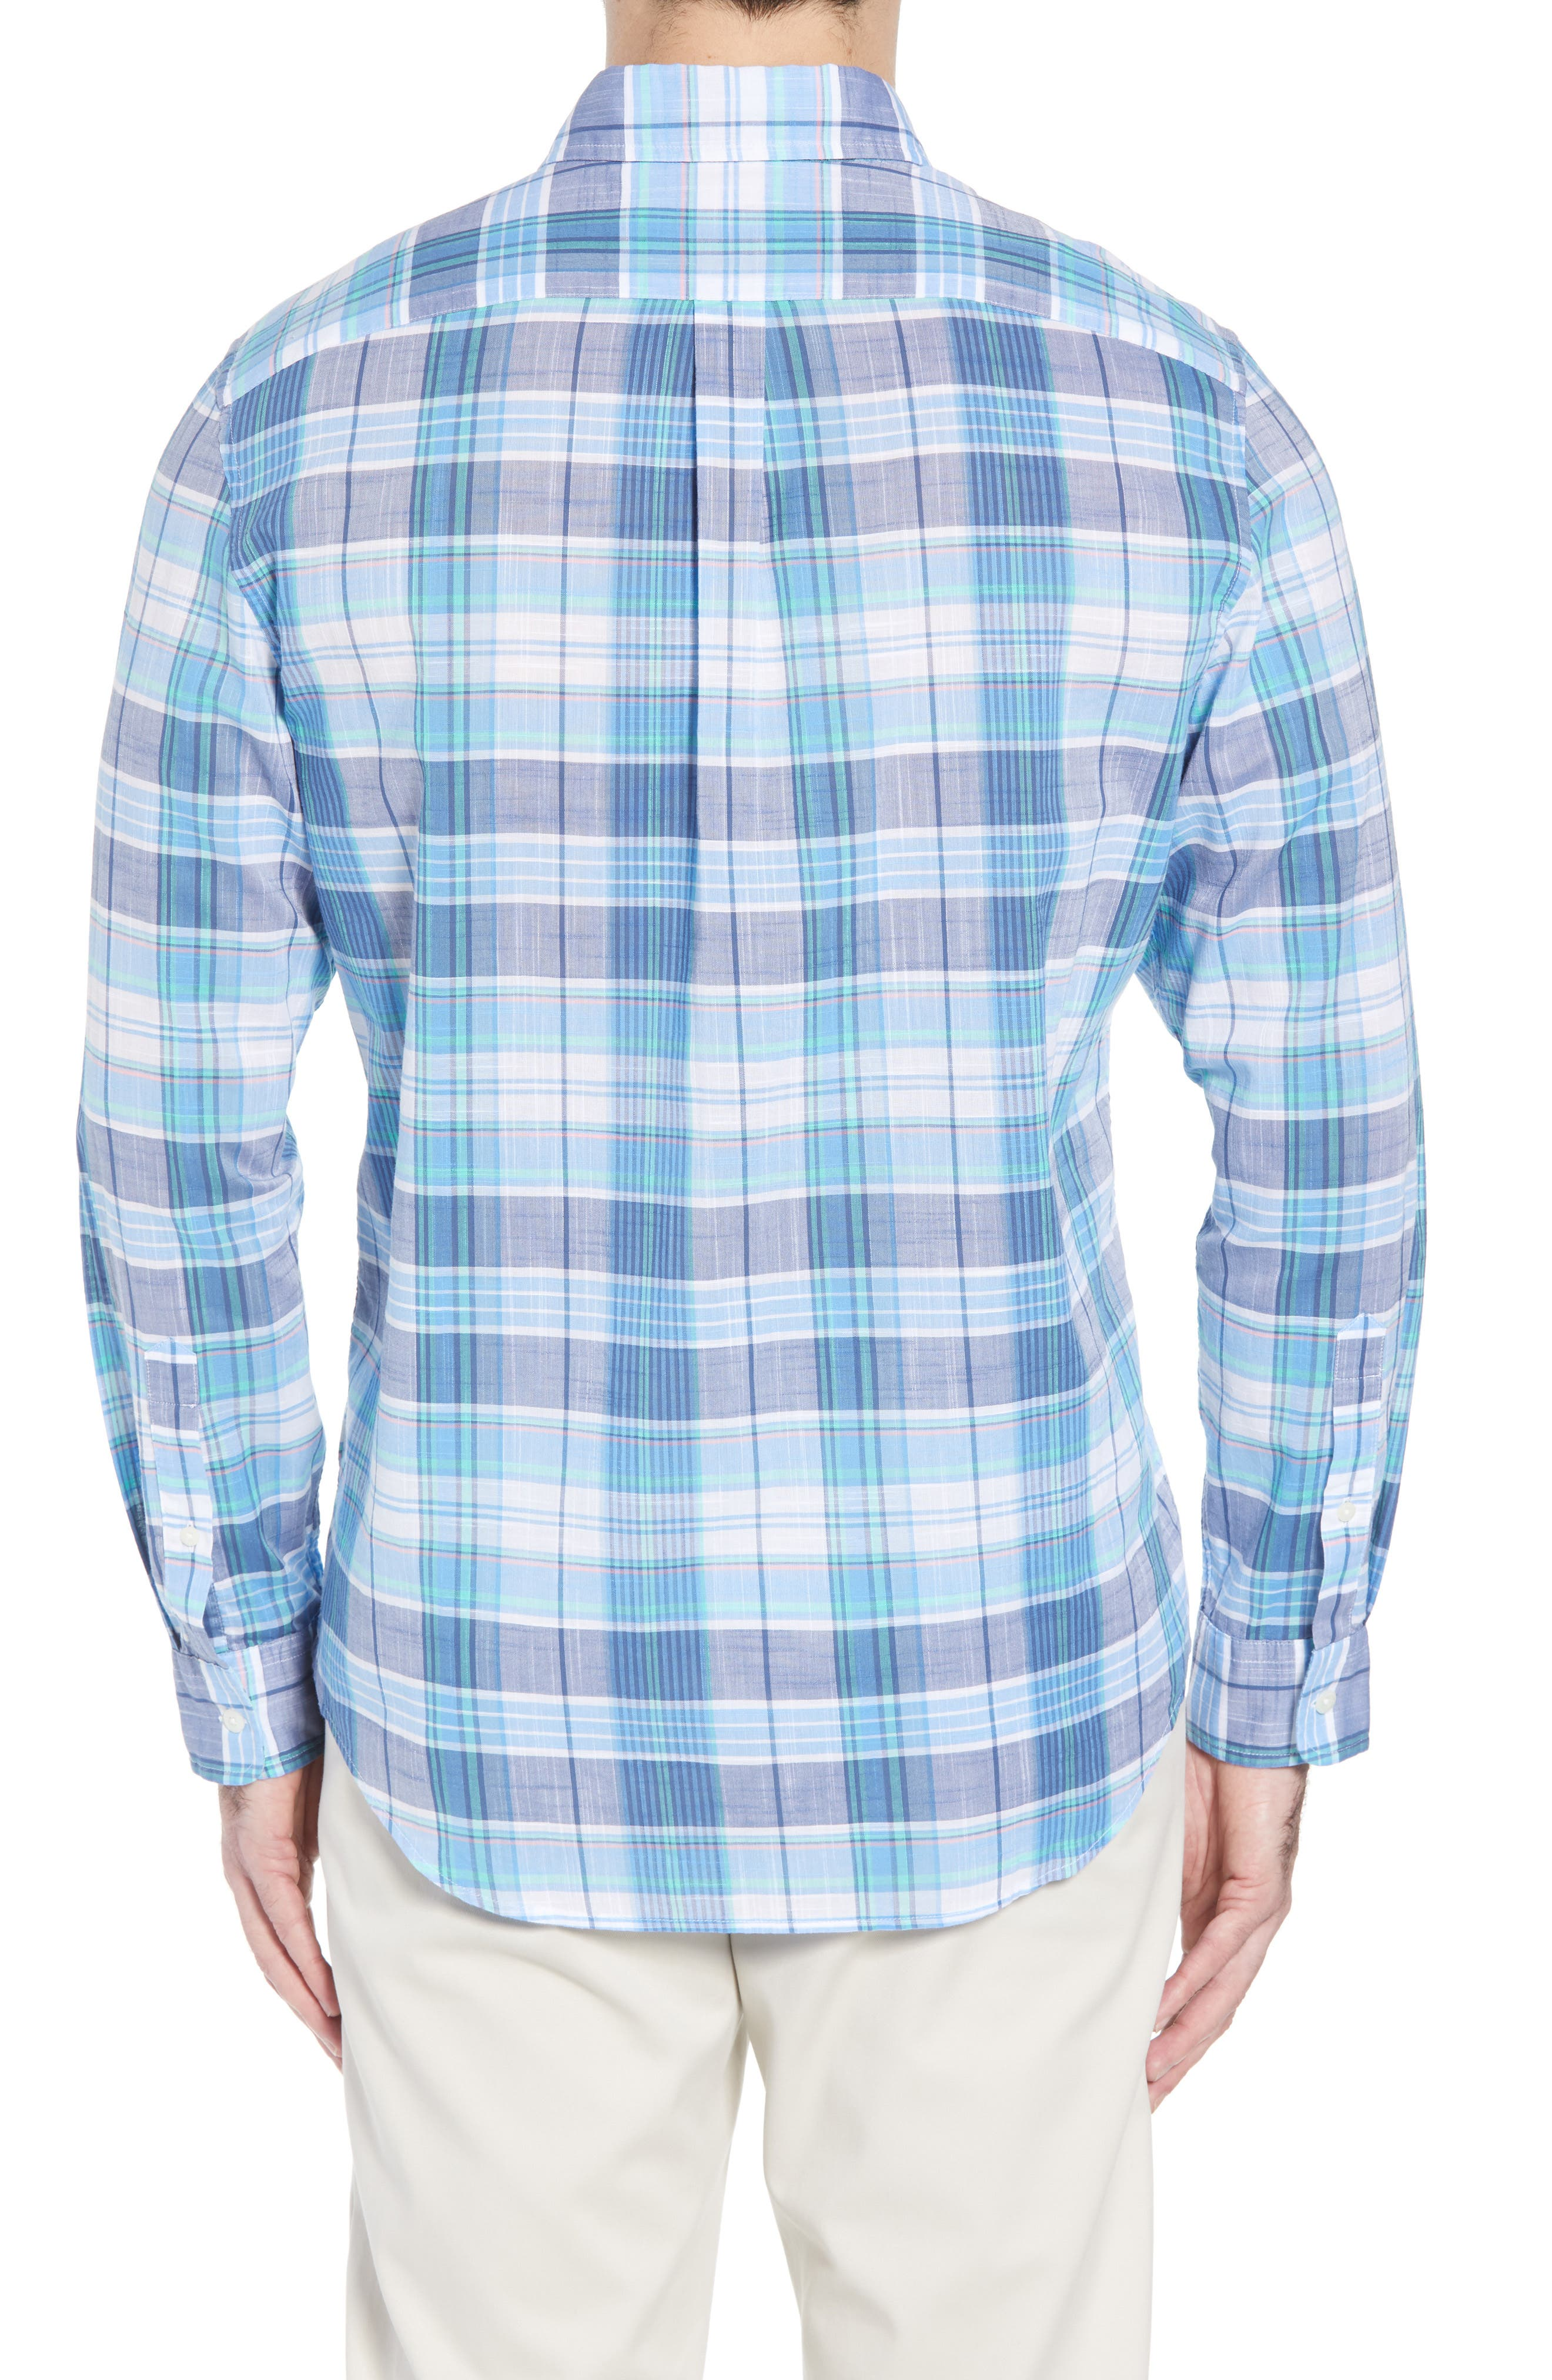 Smith Point Tucker Classic Fit Plaid Sport Shirt,                             Alternate thumbnail 2, color,                             461